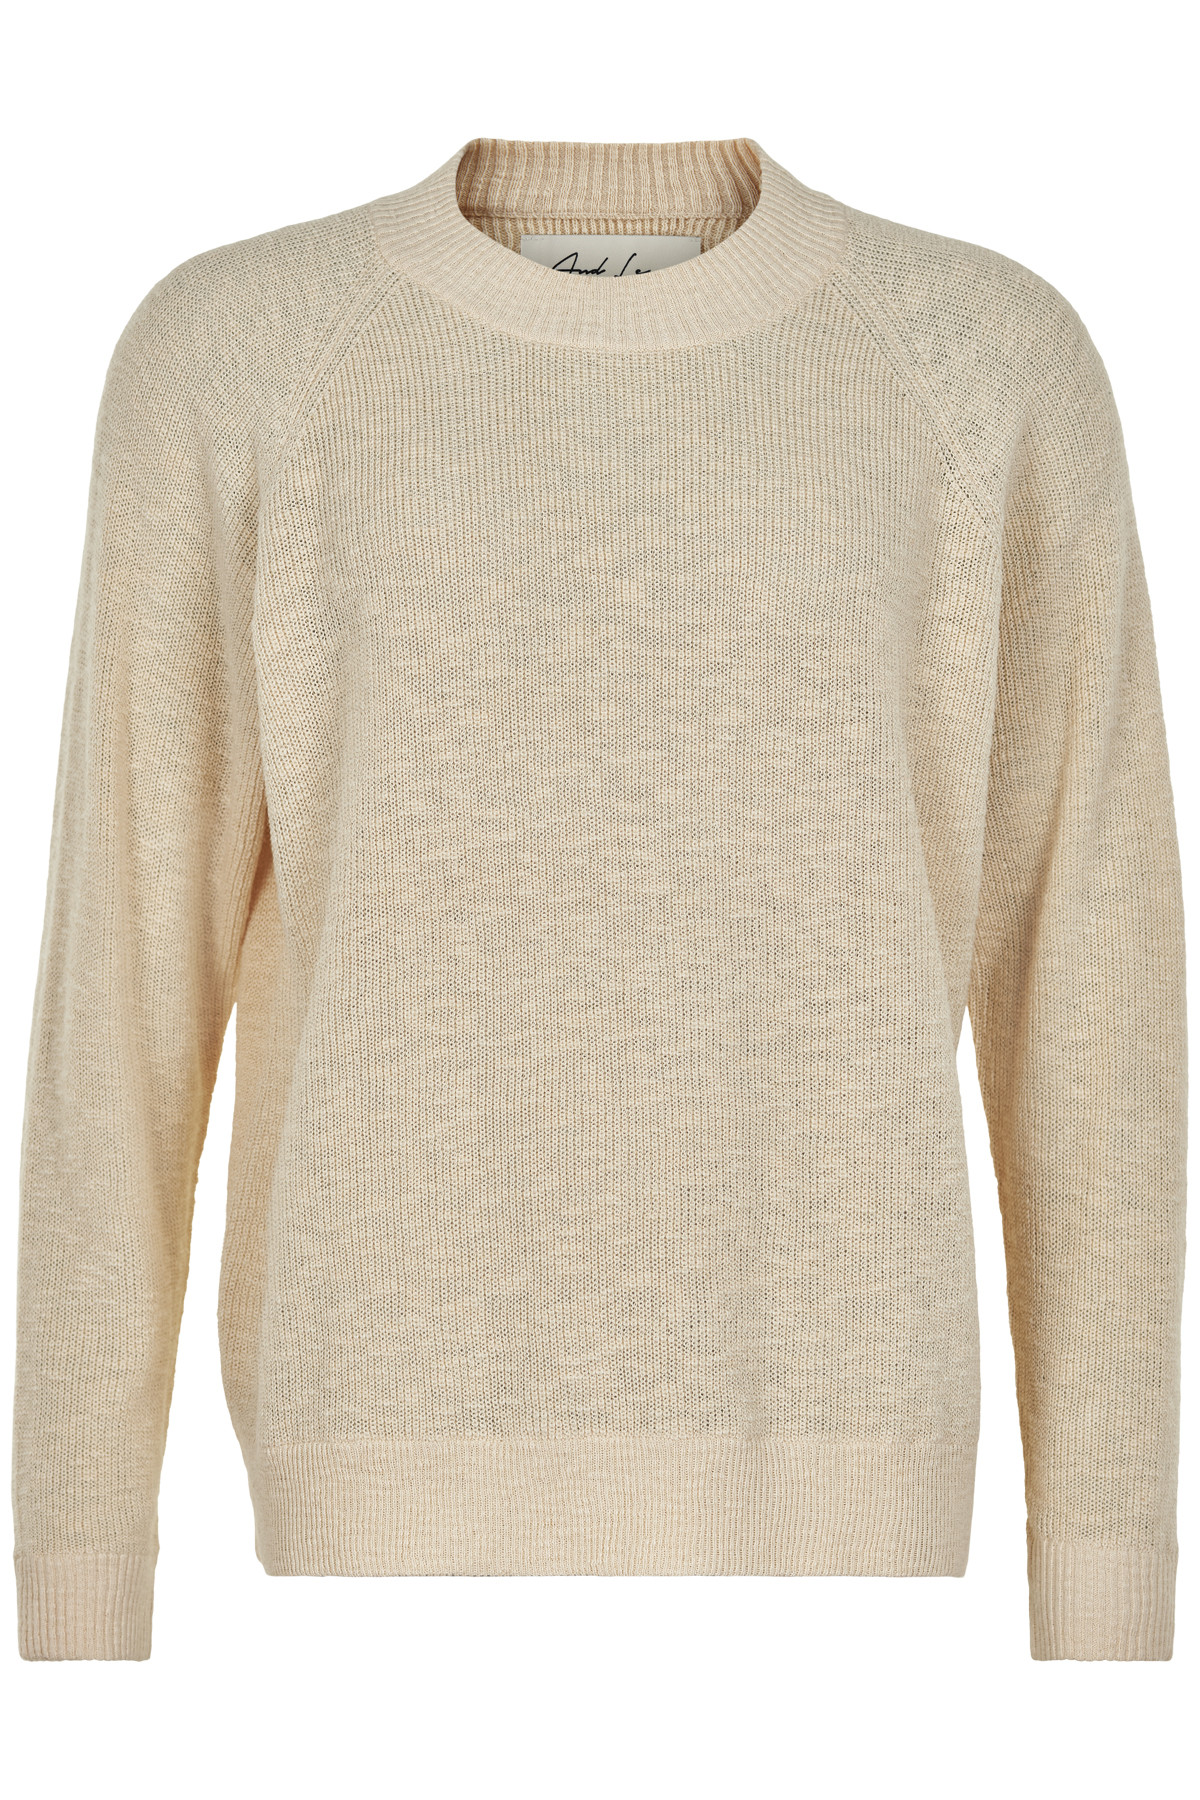 Image of   AND LESS ALBAMBINA PULLOVER 5220201 9504 (Birch, M)